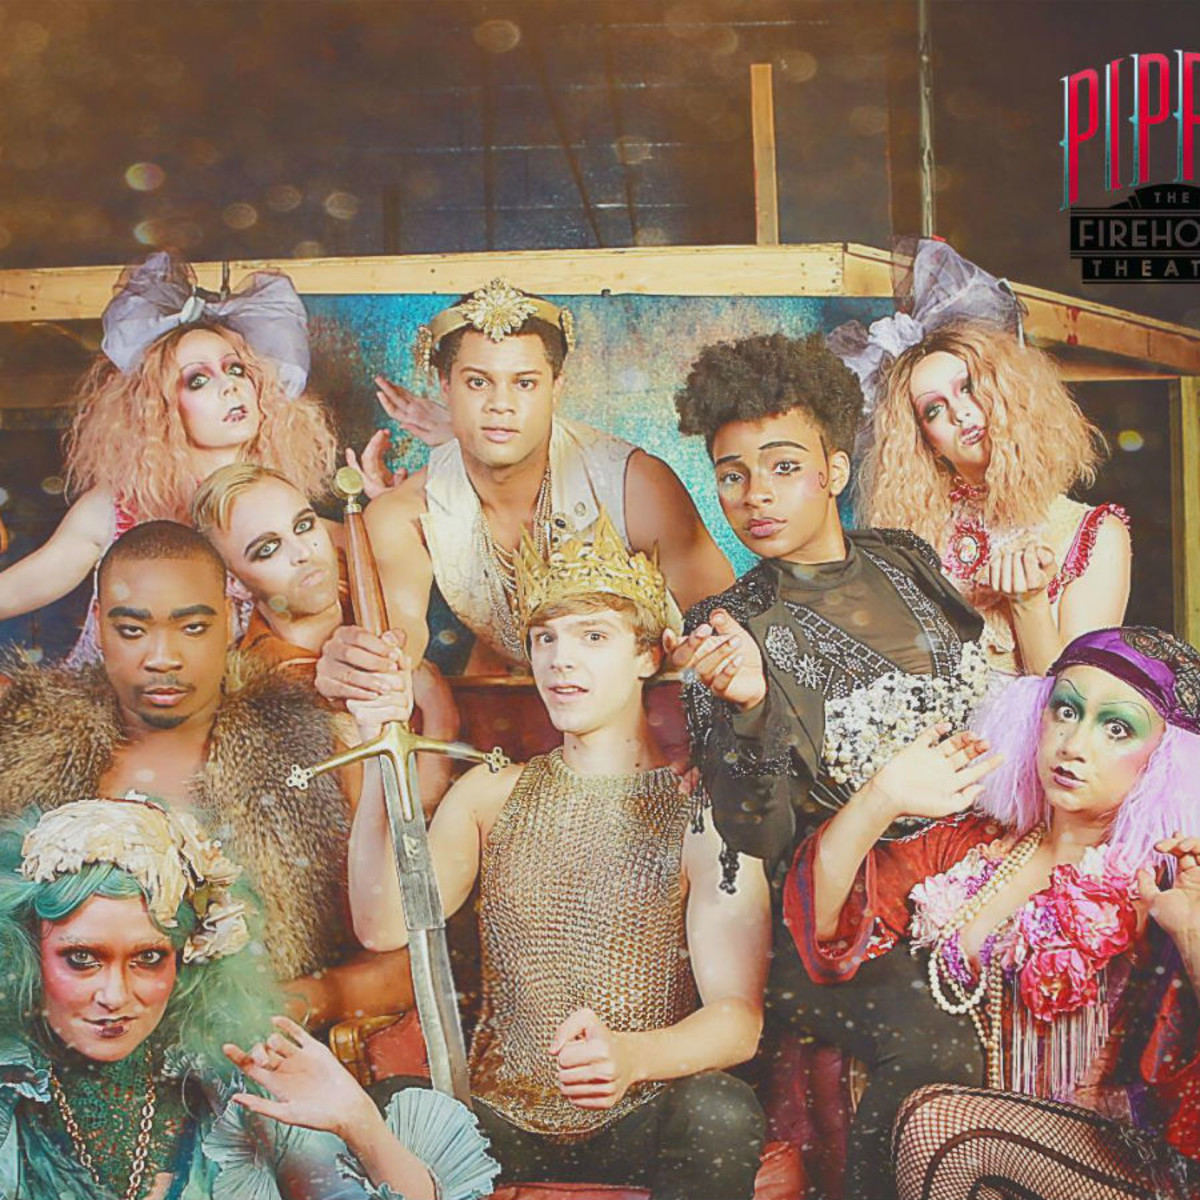 Firehouse Theatre presents Pippin